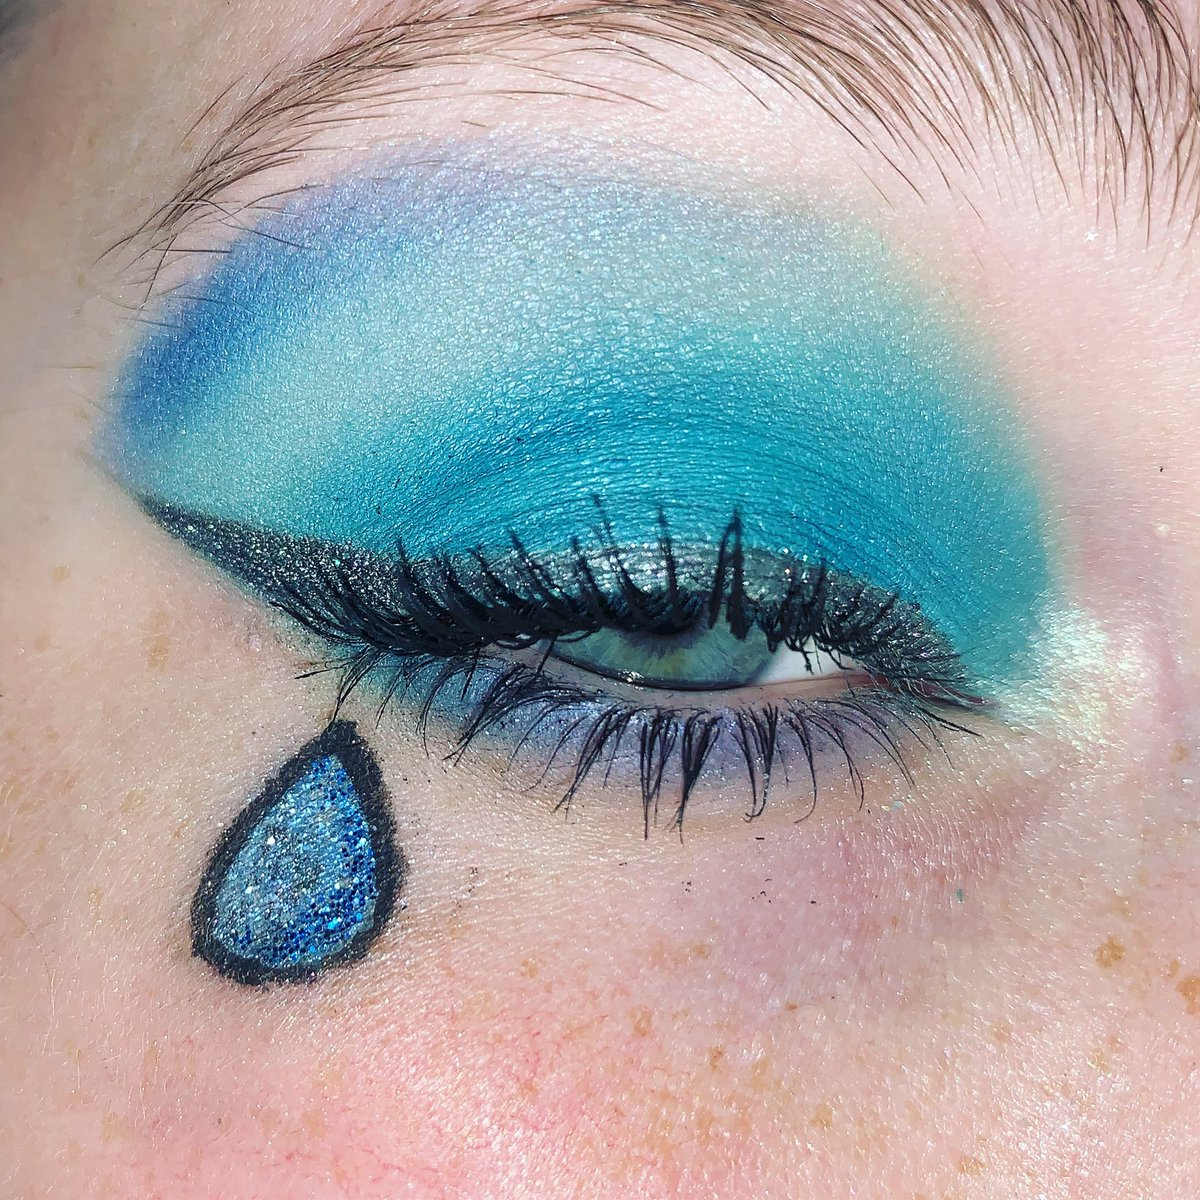 Water drop makeup look for summertime vibes . #makeup #beauty #beautyblogger #summertime #summer #makelook #amorus #Inlove  pic.twitter.com/GghKk0pUWd